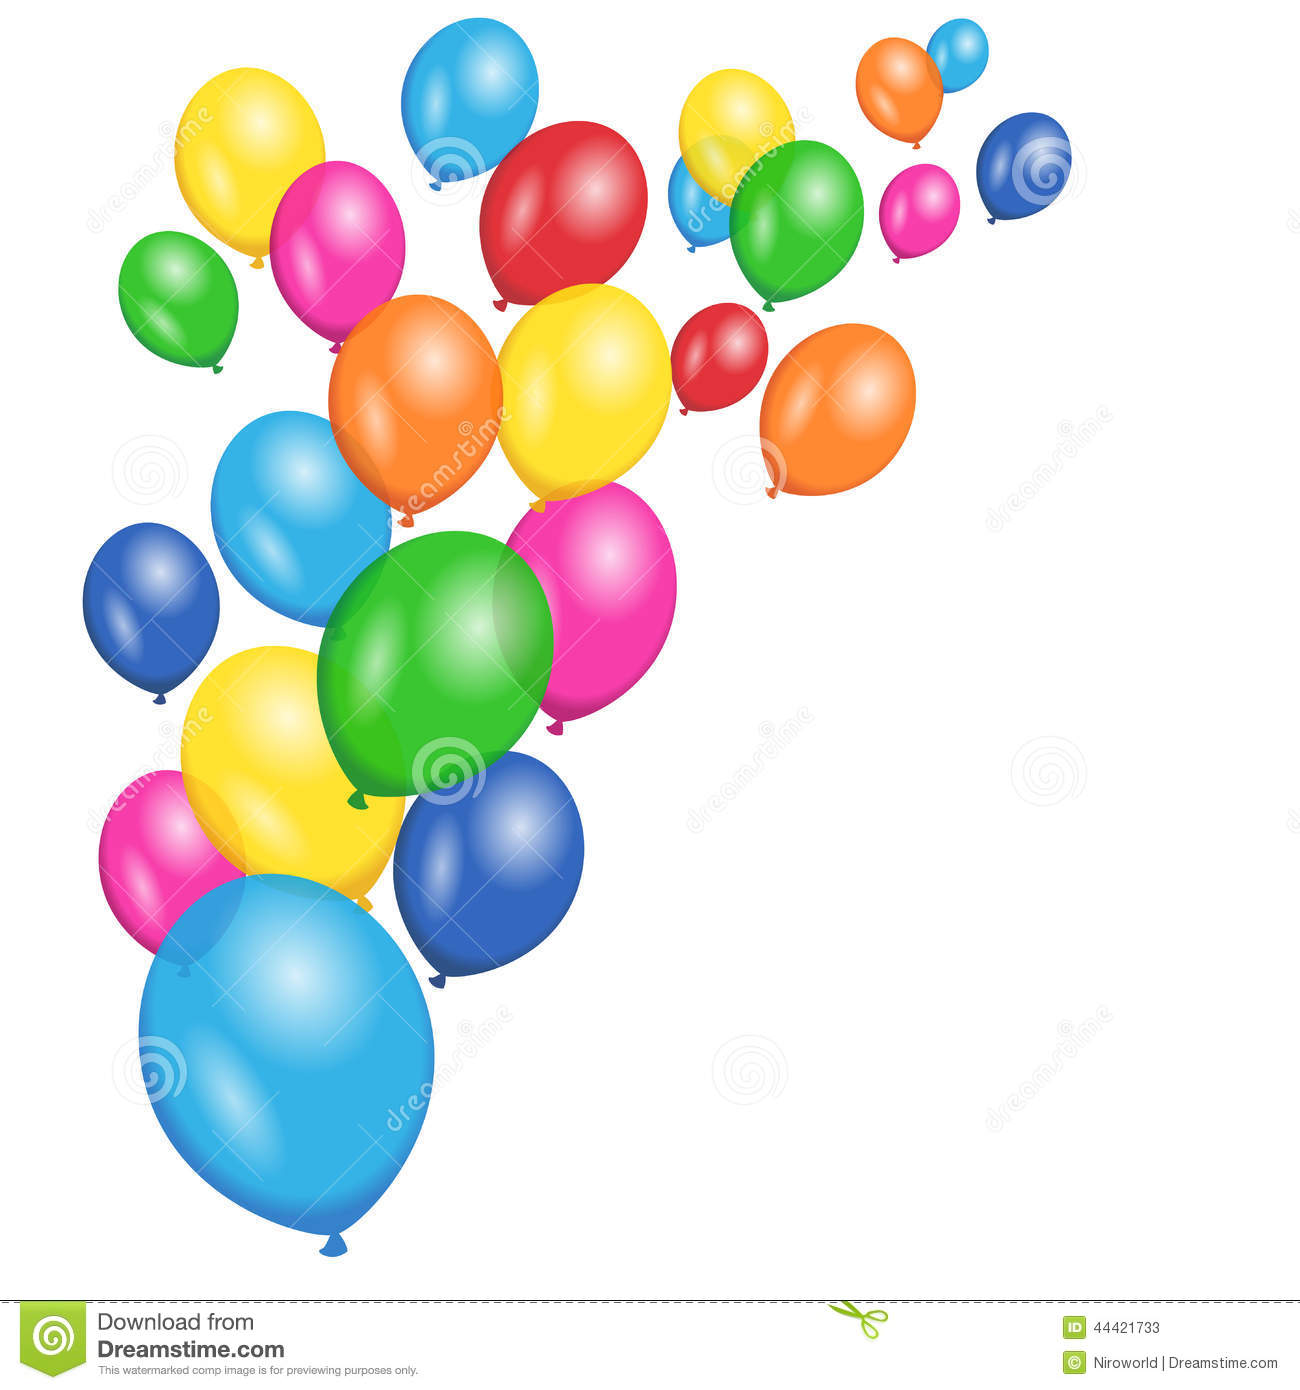 Wallpaper Border Falling Off Colorful Balloons Party Vector Background Stock